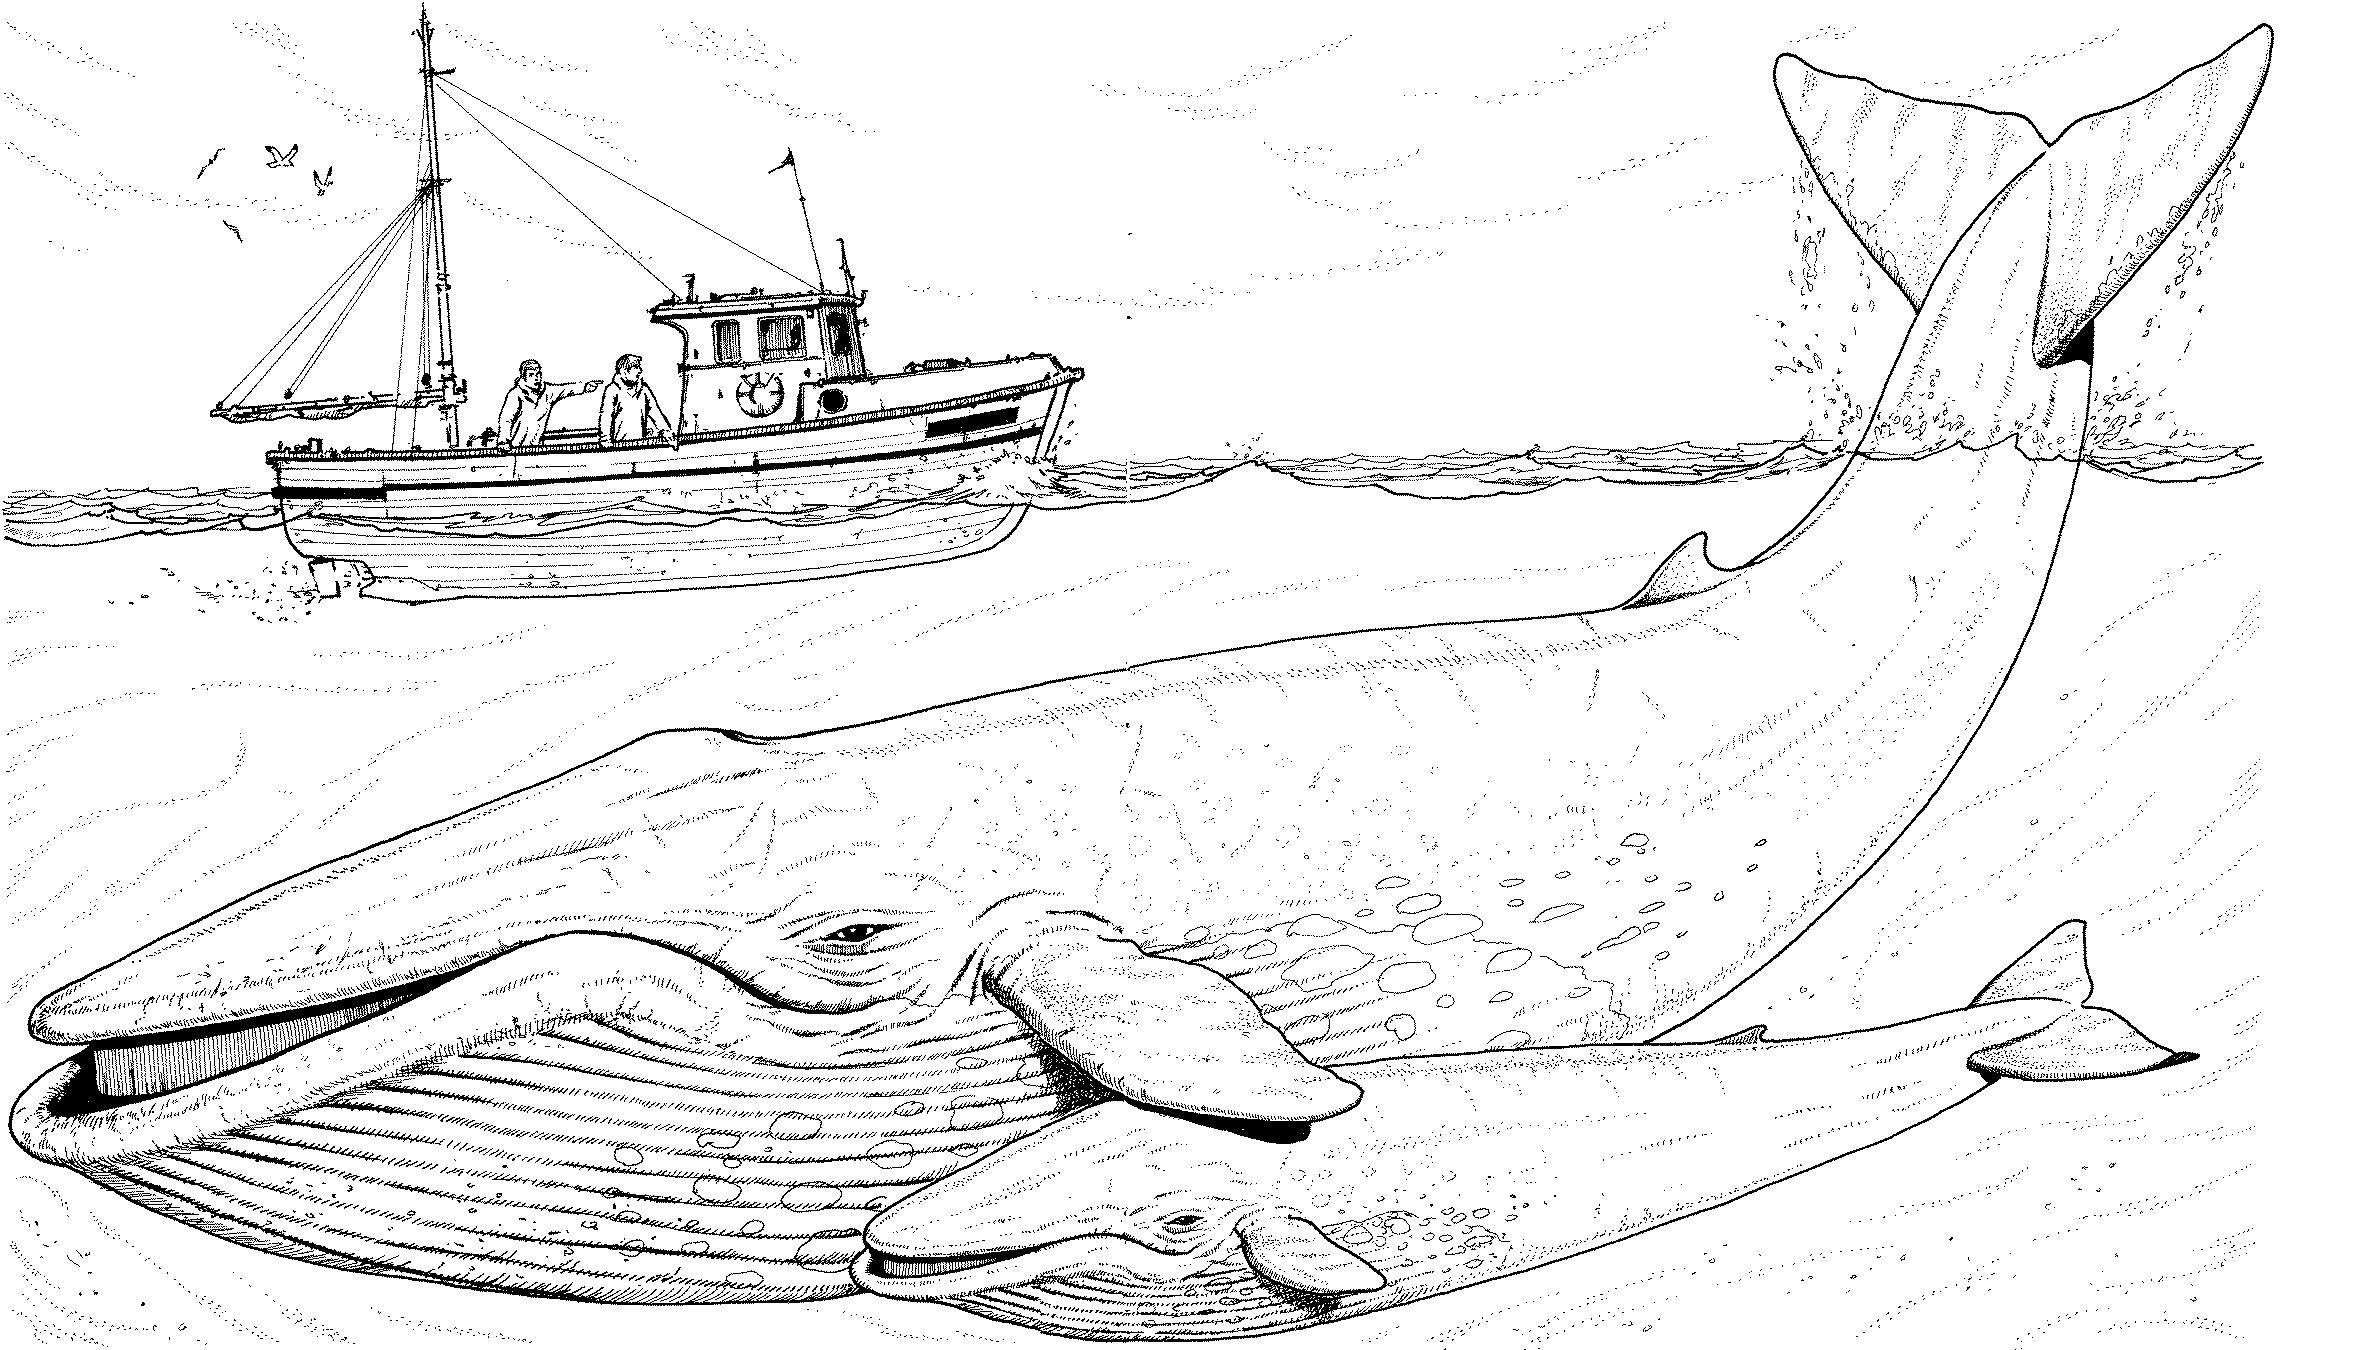 42 Coloring Page Whale In 2020 Whale Coloring Pages Monster Truck Coloring Pages Animal Coloring Pages